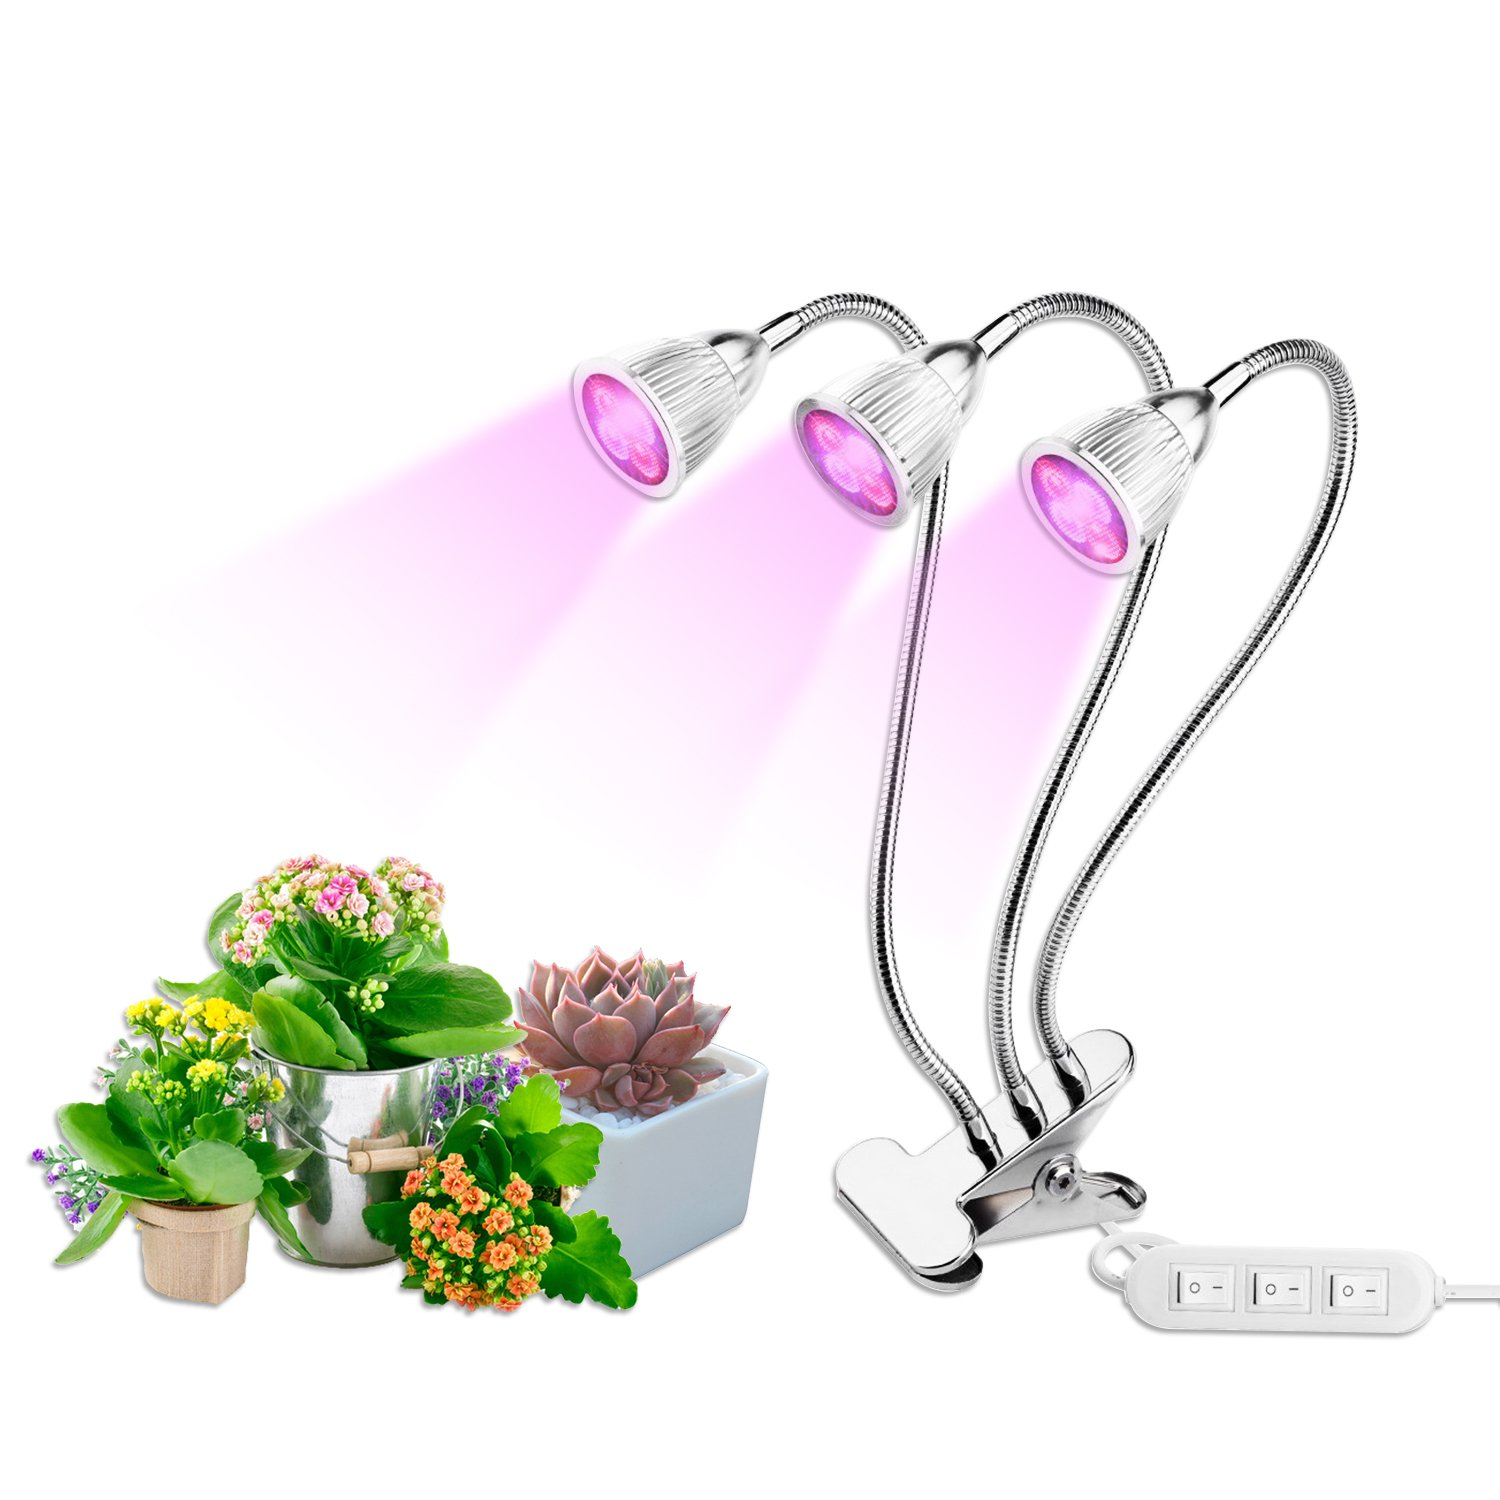 Grow Lights, TGGOUS Grow Lamp Bulbs 15W Three Head with Separate Switch and Adjustable Gooseneck 360 Degree for Indoor Plants Flowers Vegetables Seed Starting Succulents Greenhouse Silver